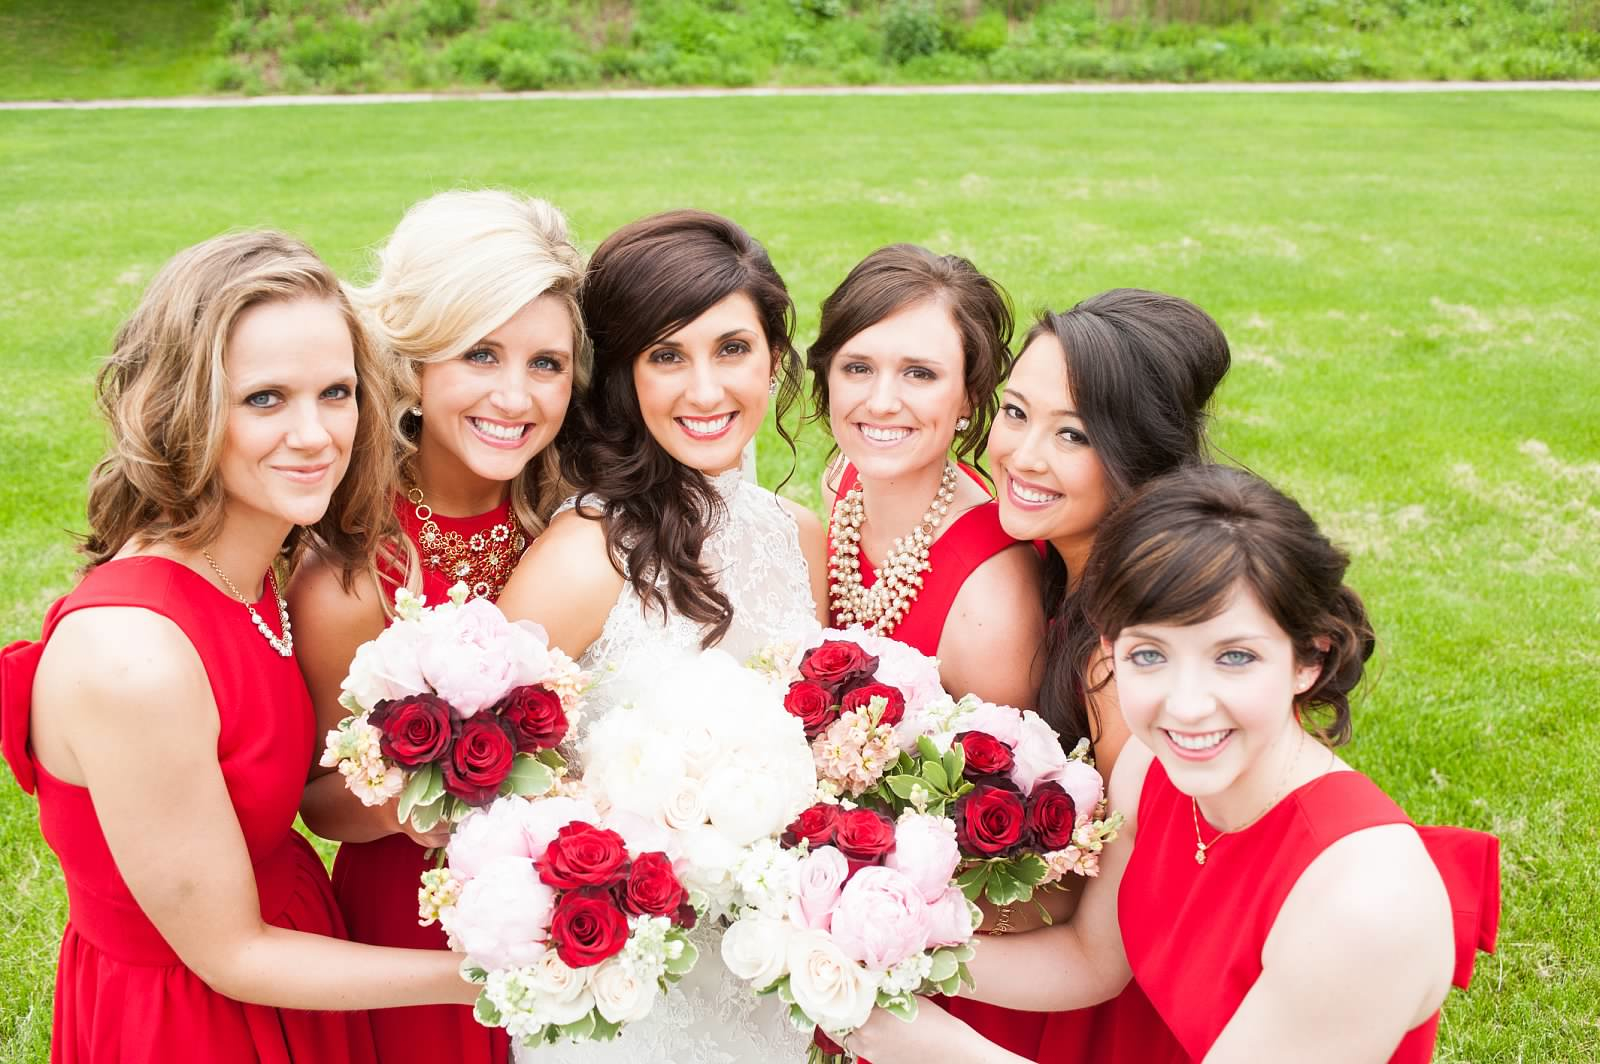 Bride and bridesmaids with red, white, and pink bouquets.jpg